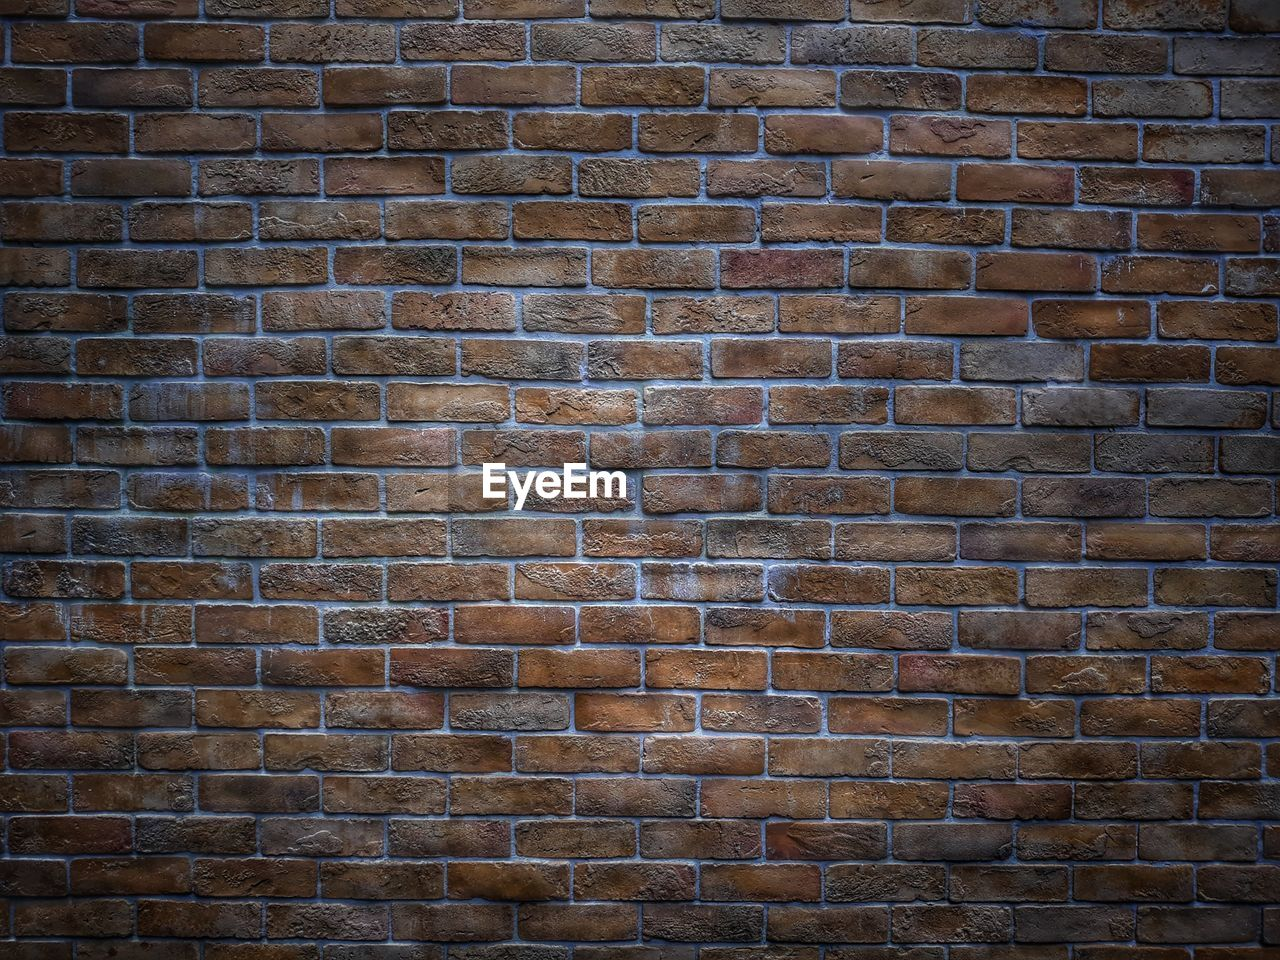 brick, backgrounds, brick wall, wall, pattern, full frame, textured, architecture, wall - building feature, built structure, no people, brown, old, repetition, close-up, building exterior, day, construction material, solid, outdoors, textured effect